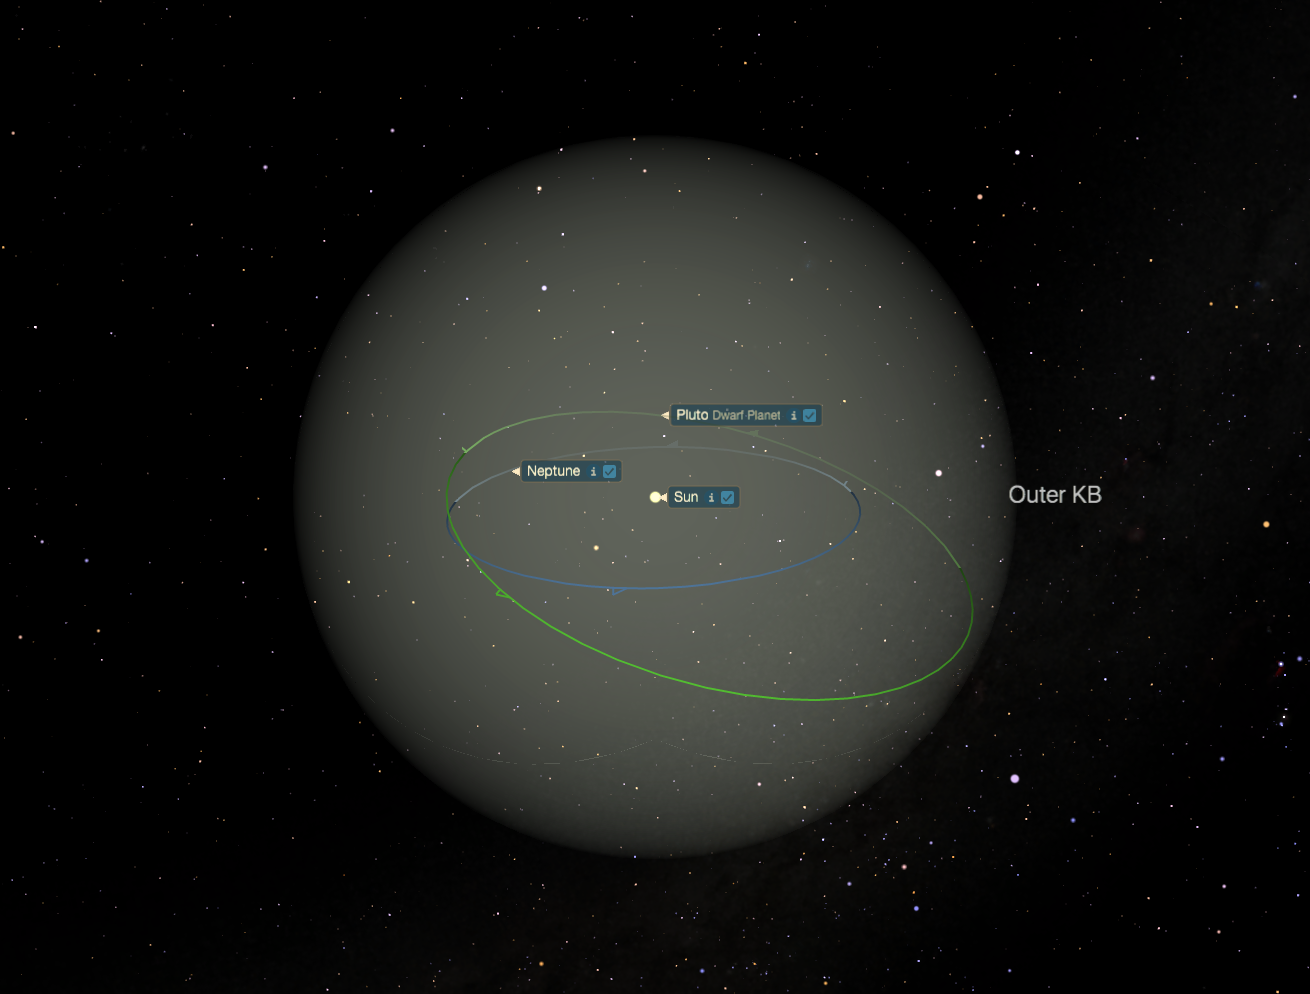 Figure 6: The orbit of QB1 relative to other solar system objects